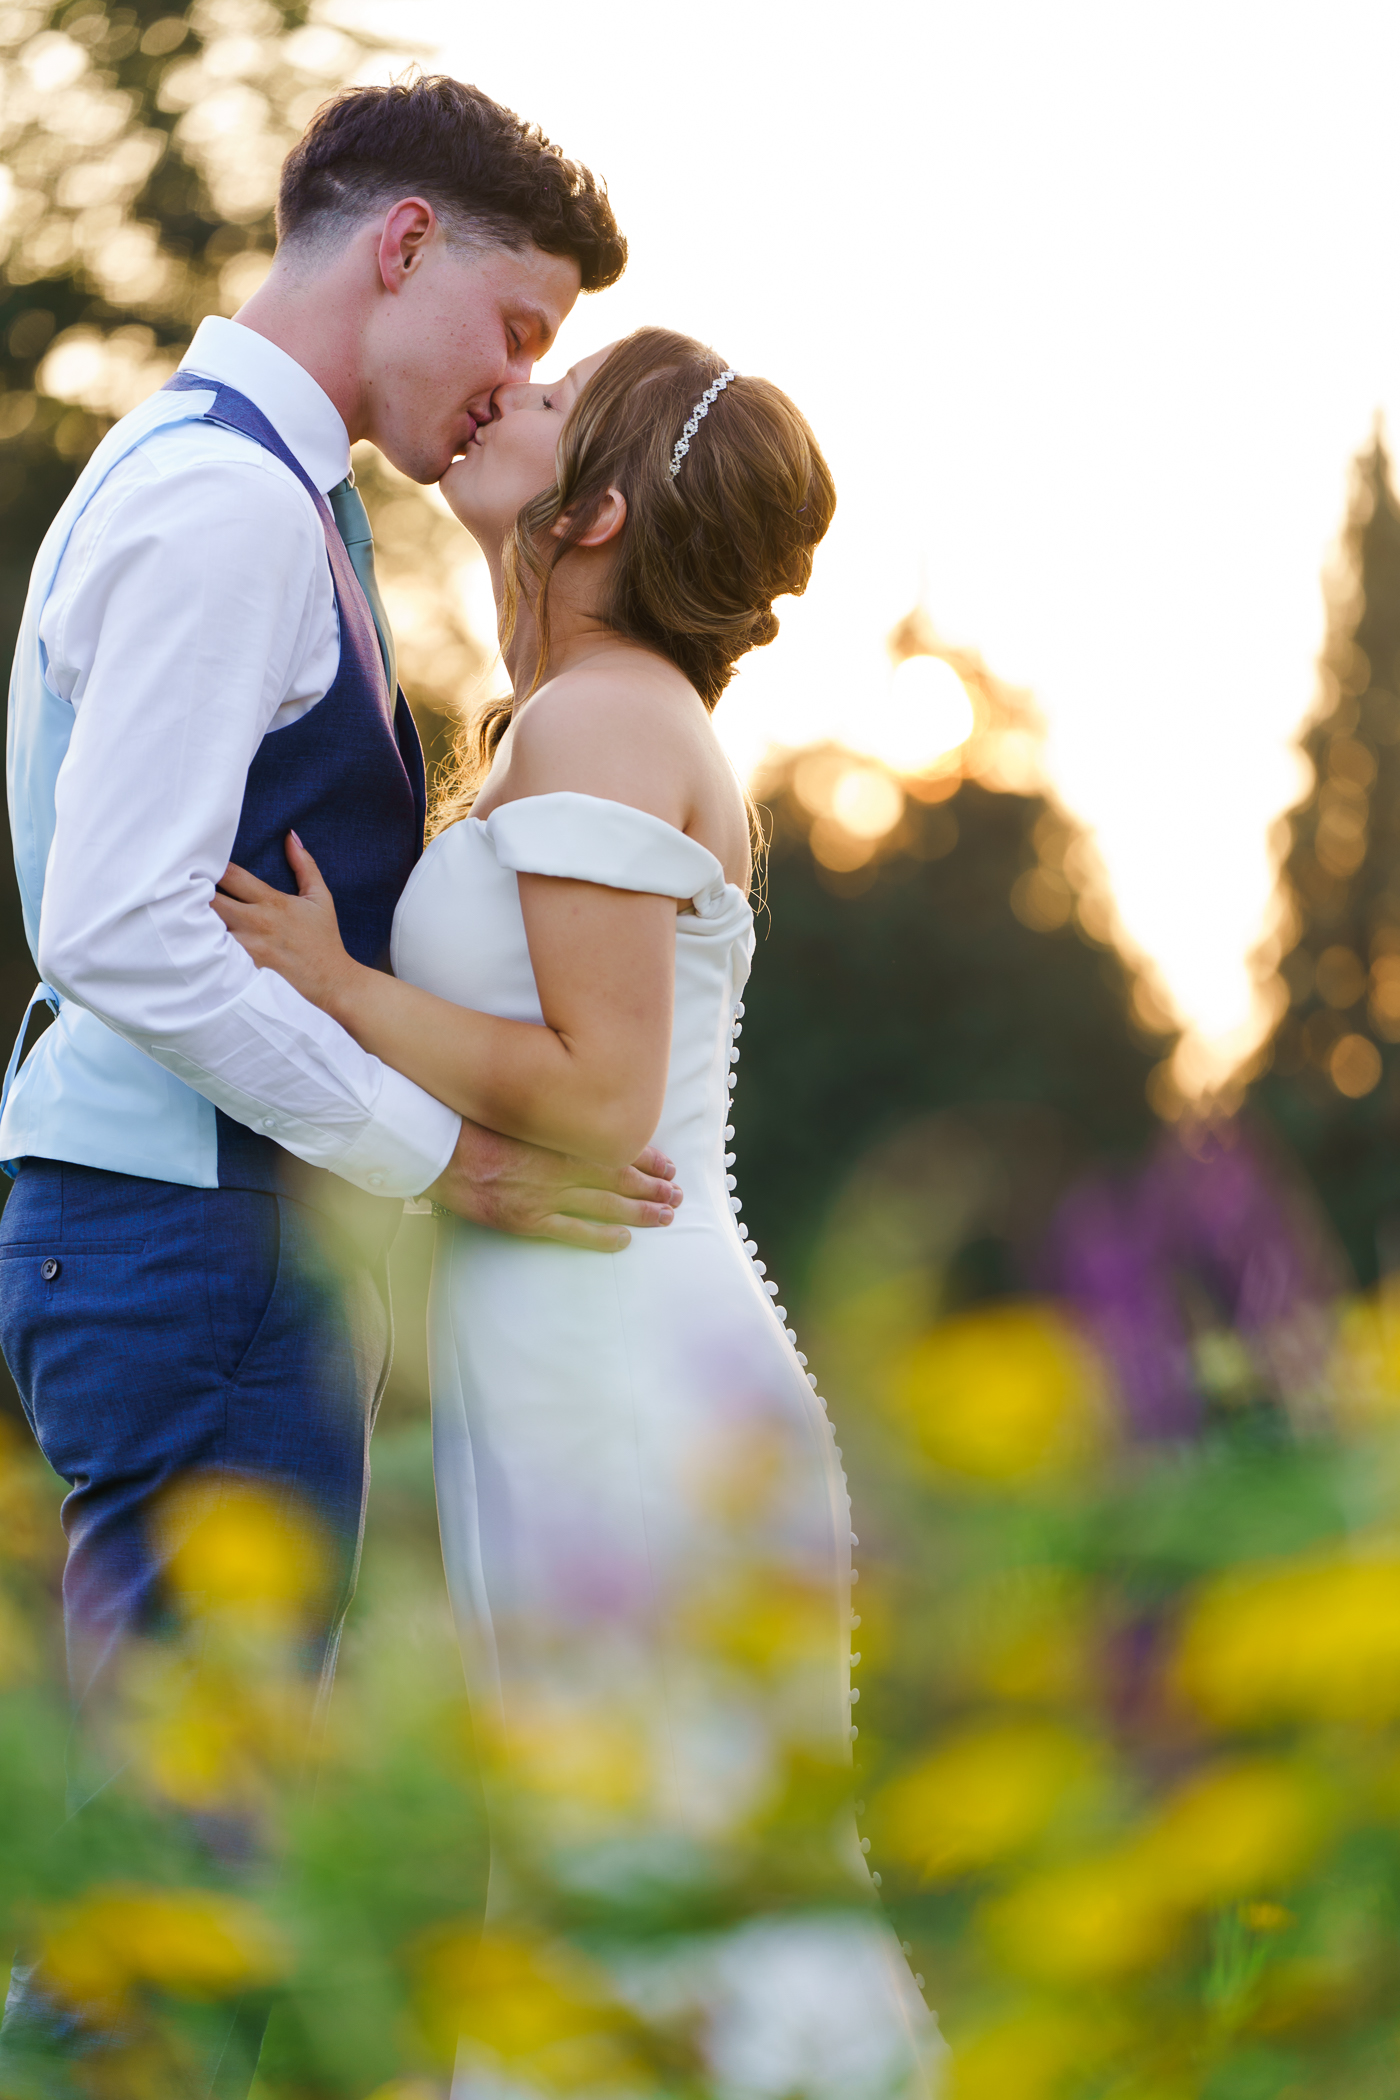 beautiful golden hour photo of brdie and groom kissing in field surrounded by wild flowers